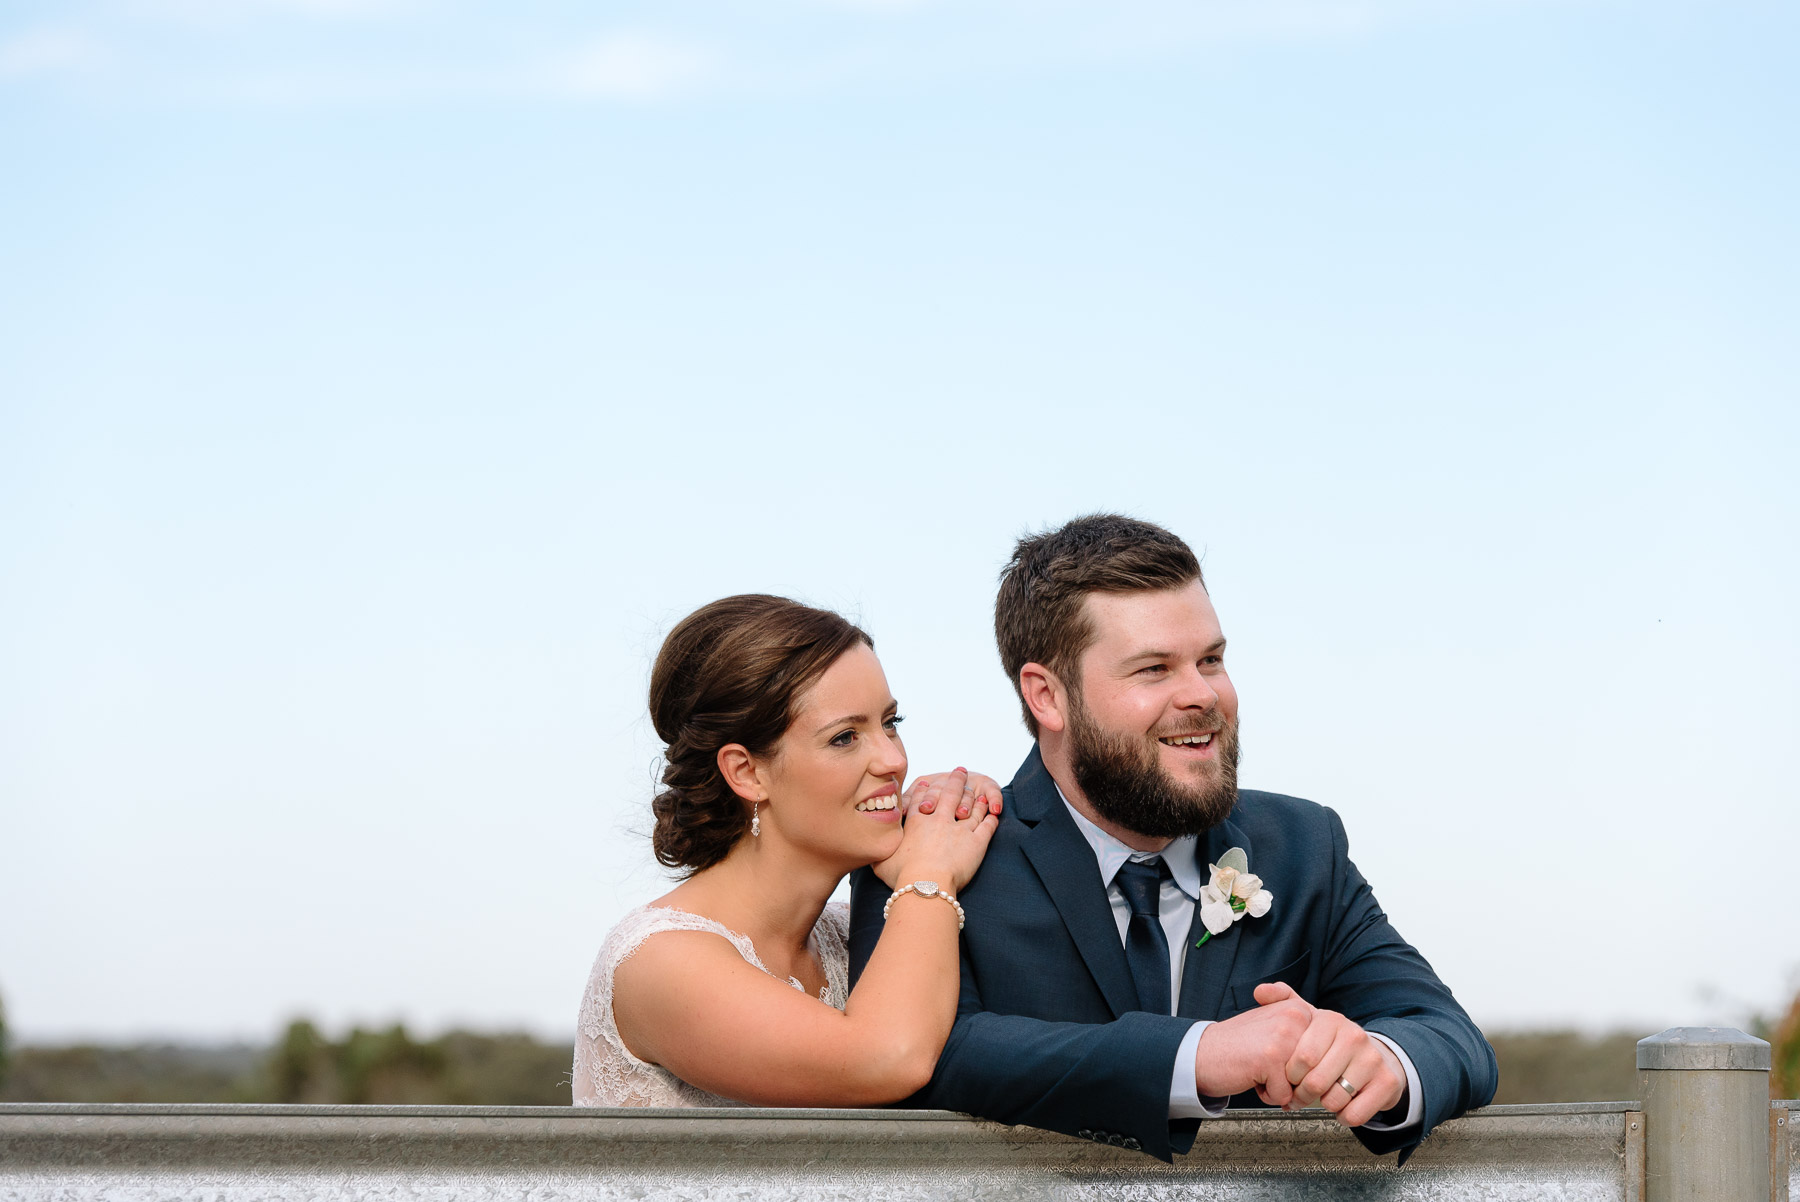 Justin_and_Jim_Best_Of_Wedding_Photography-11.jpg